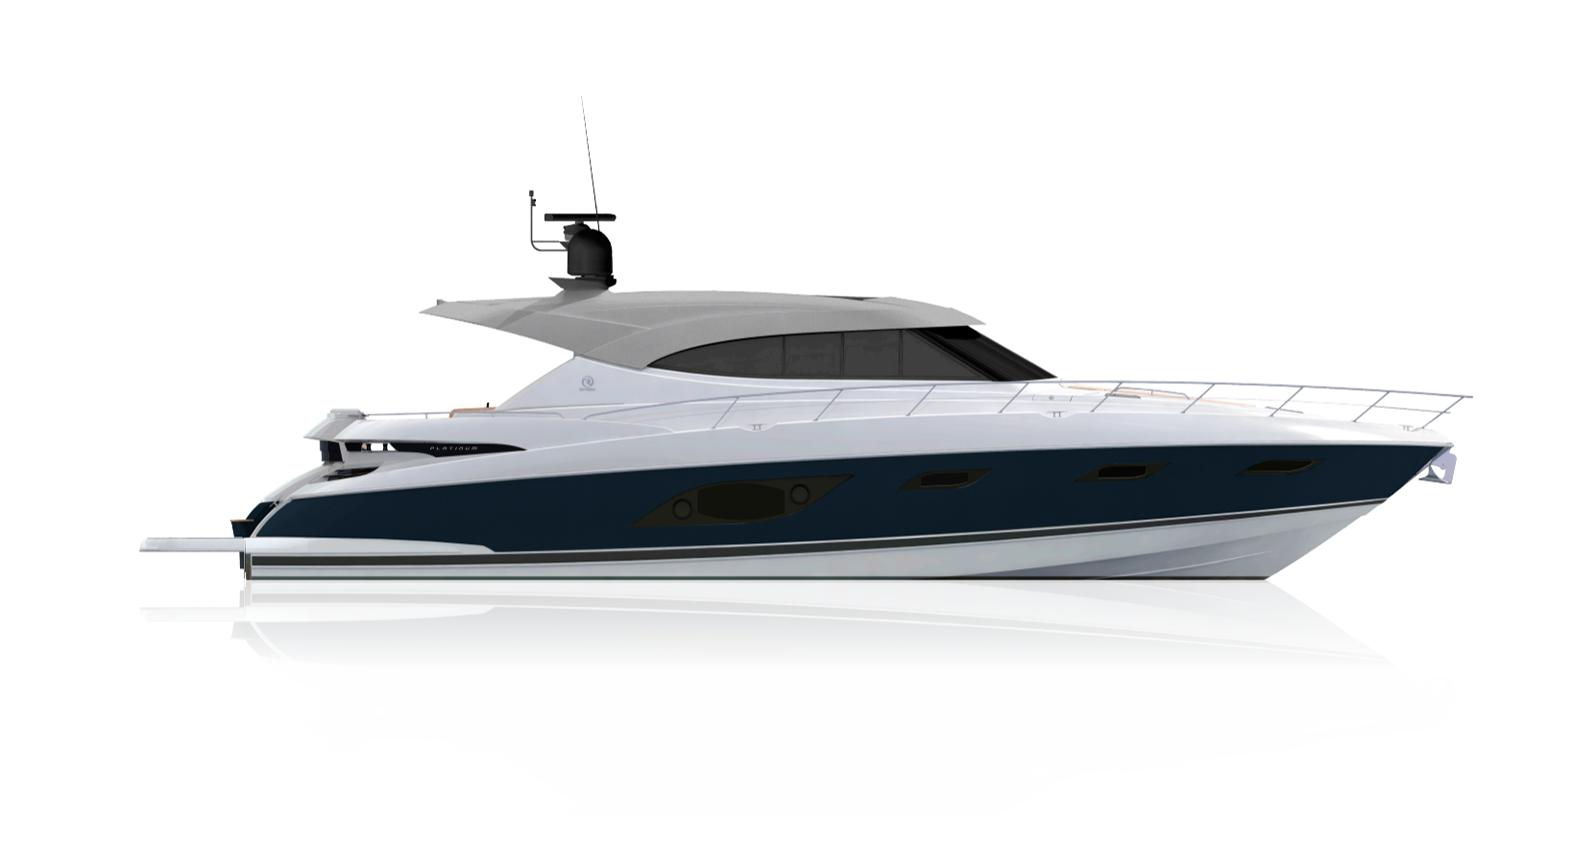 2021 Riviera 6000 Sport Yacht #R099 inventory image at Sun Country Coastal in San Diego